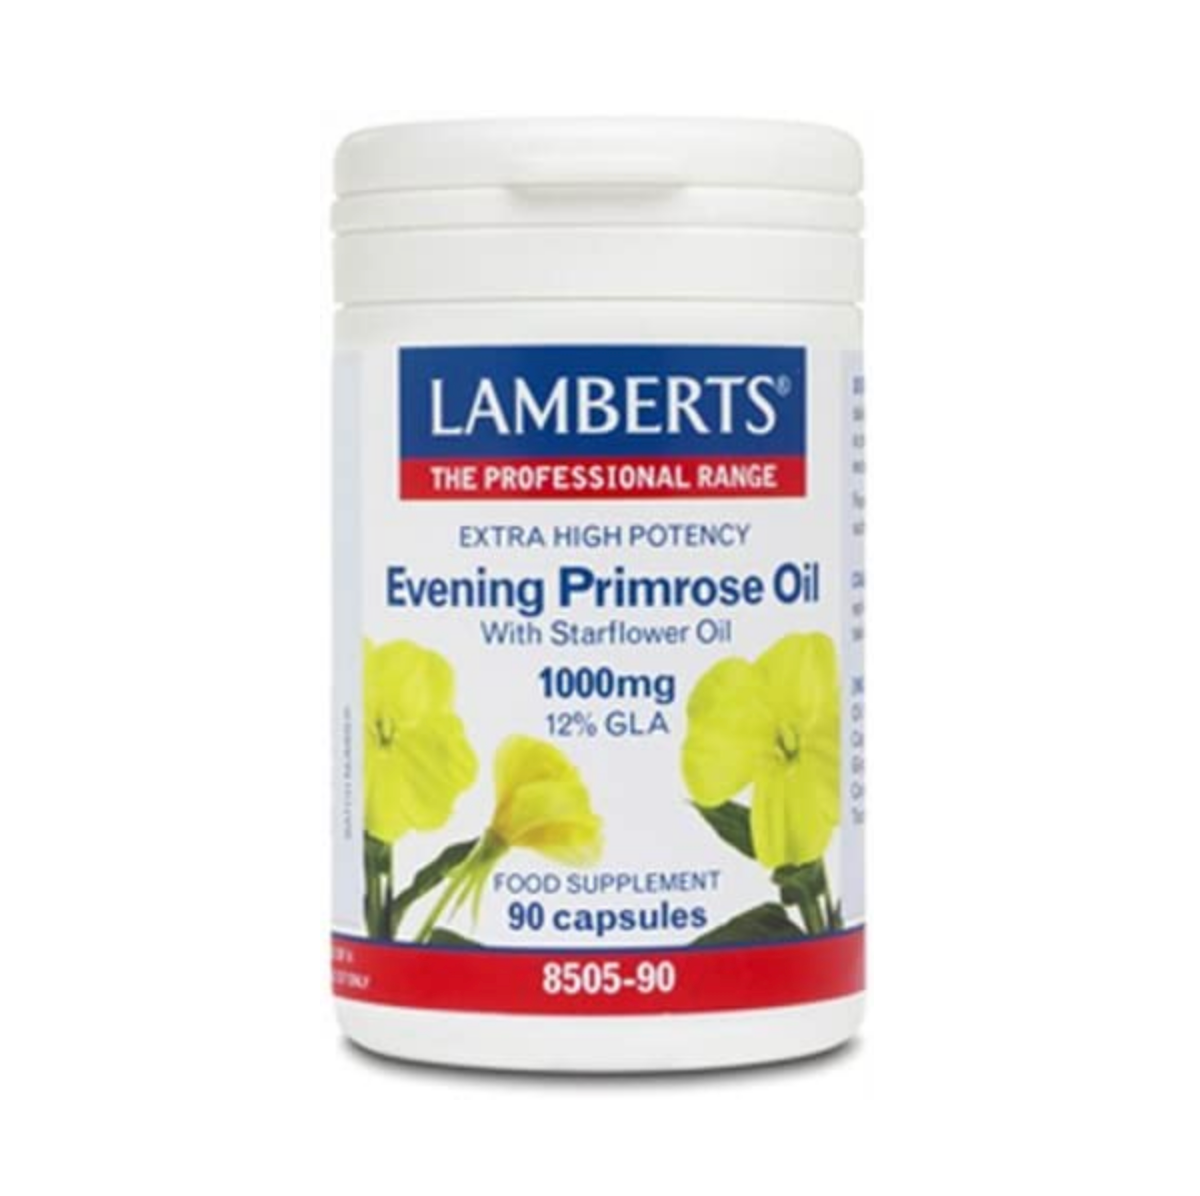 Lamberts Evening Primrose Oil with Starflower Oil 1000mg QTY 90 Capsules Amazon co uk Health Personal Care Favourites